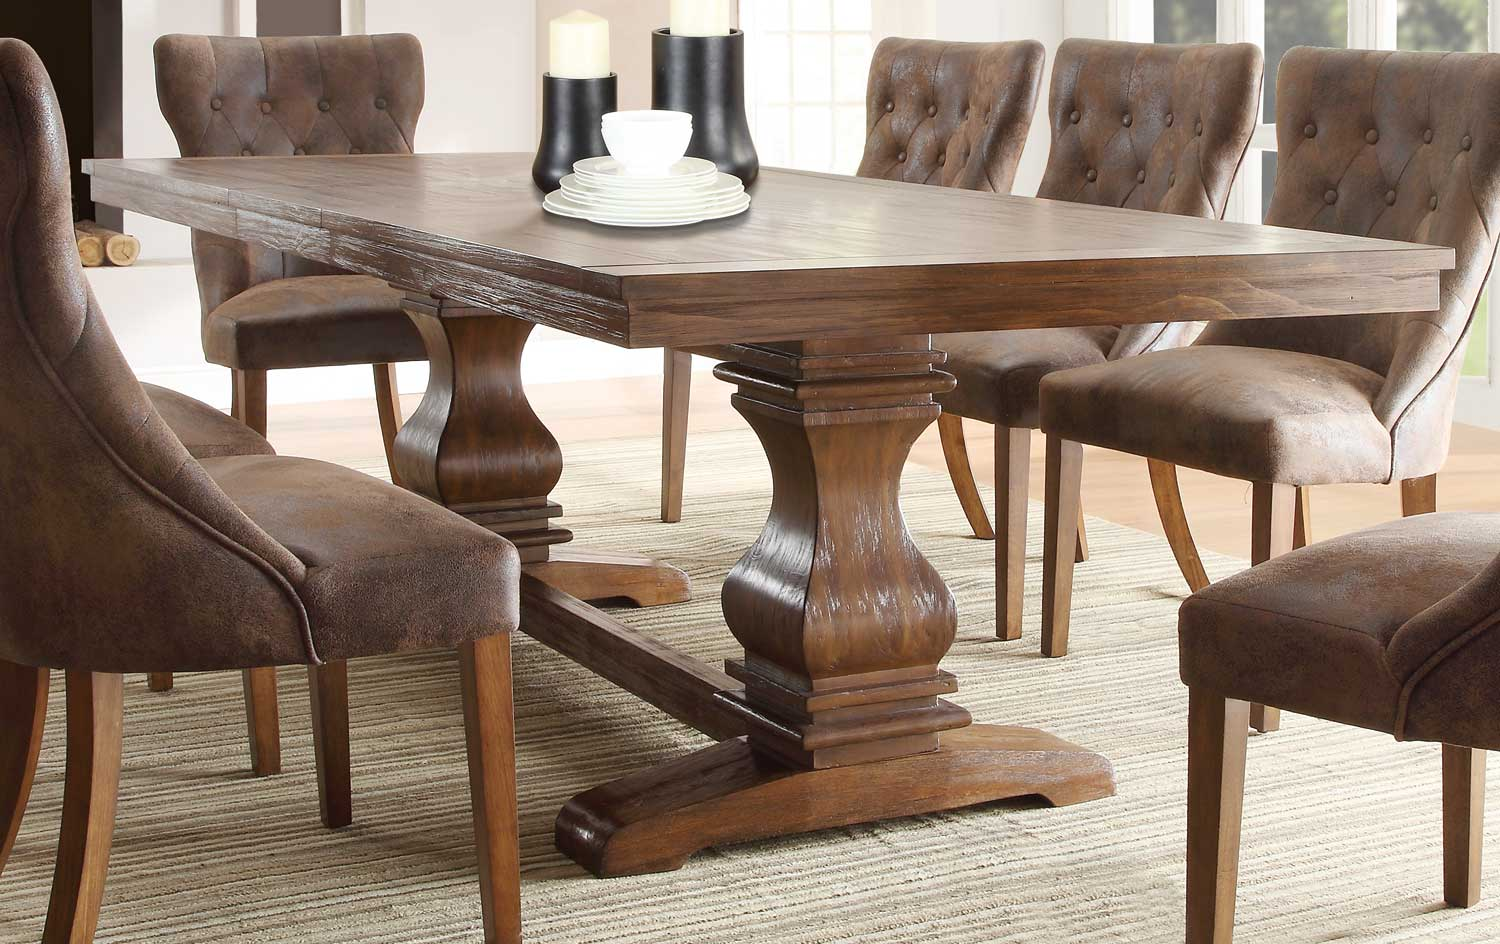 Homelegance Marie Louise Dining Set Rustic Oak Brown